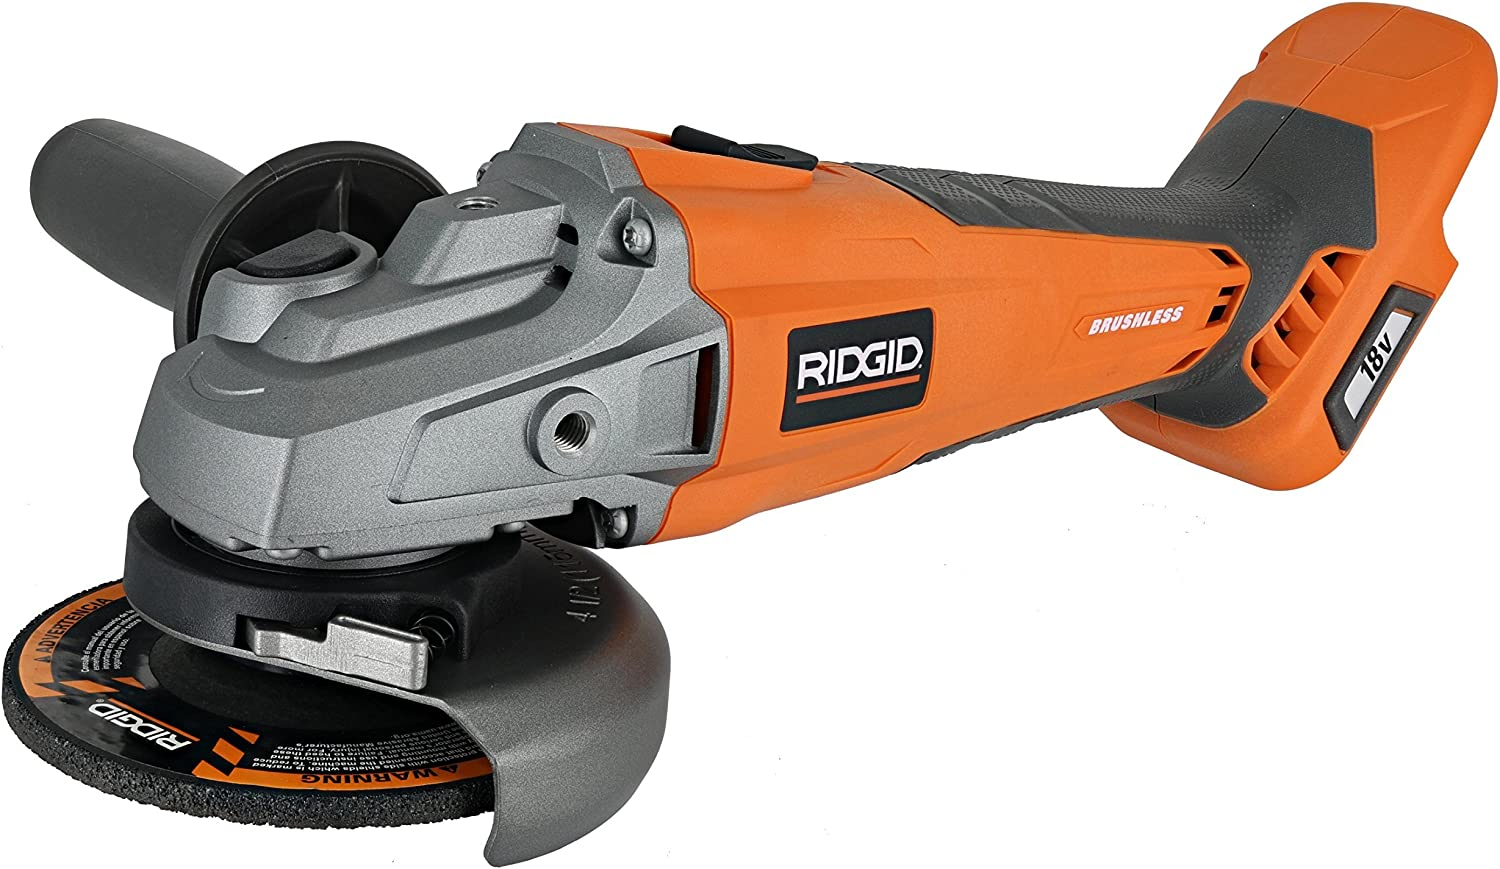 Ridgid brushless 18v 4-1 2in. Angle Grinder Renewed